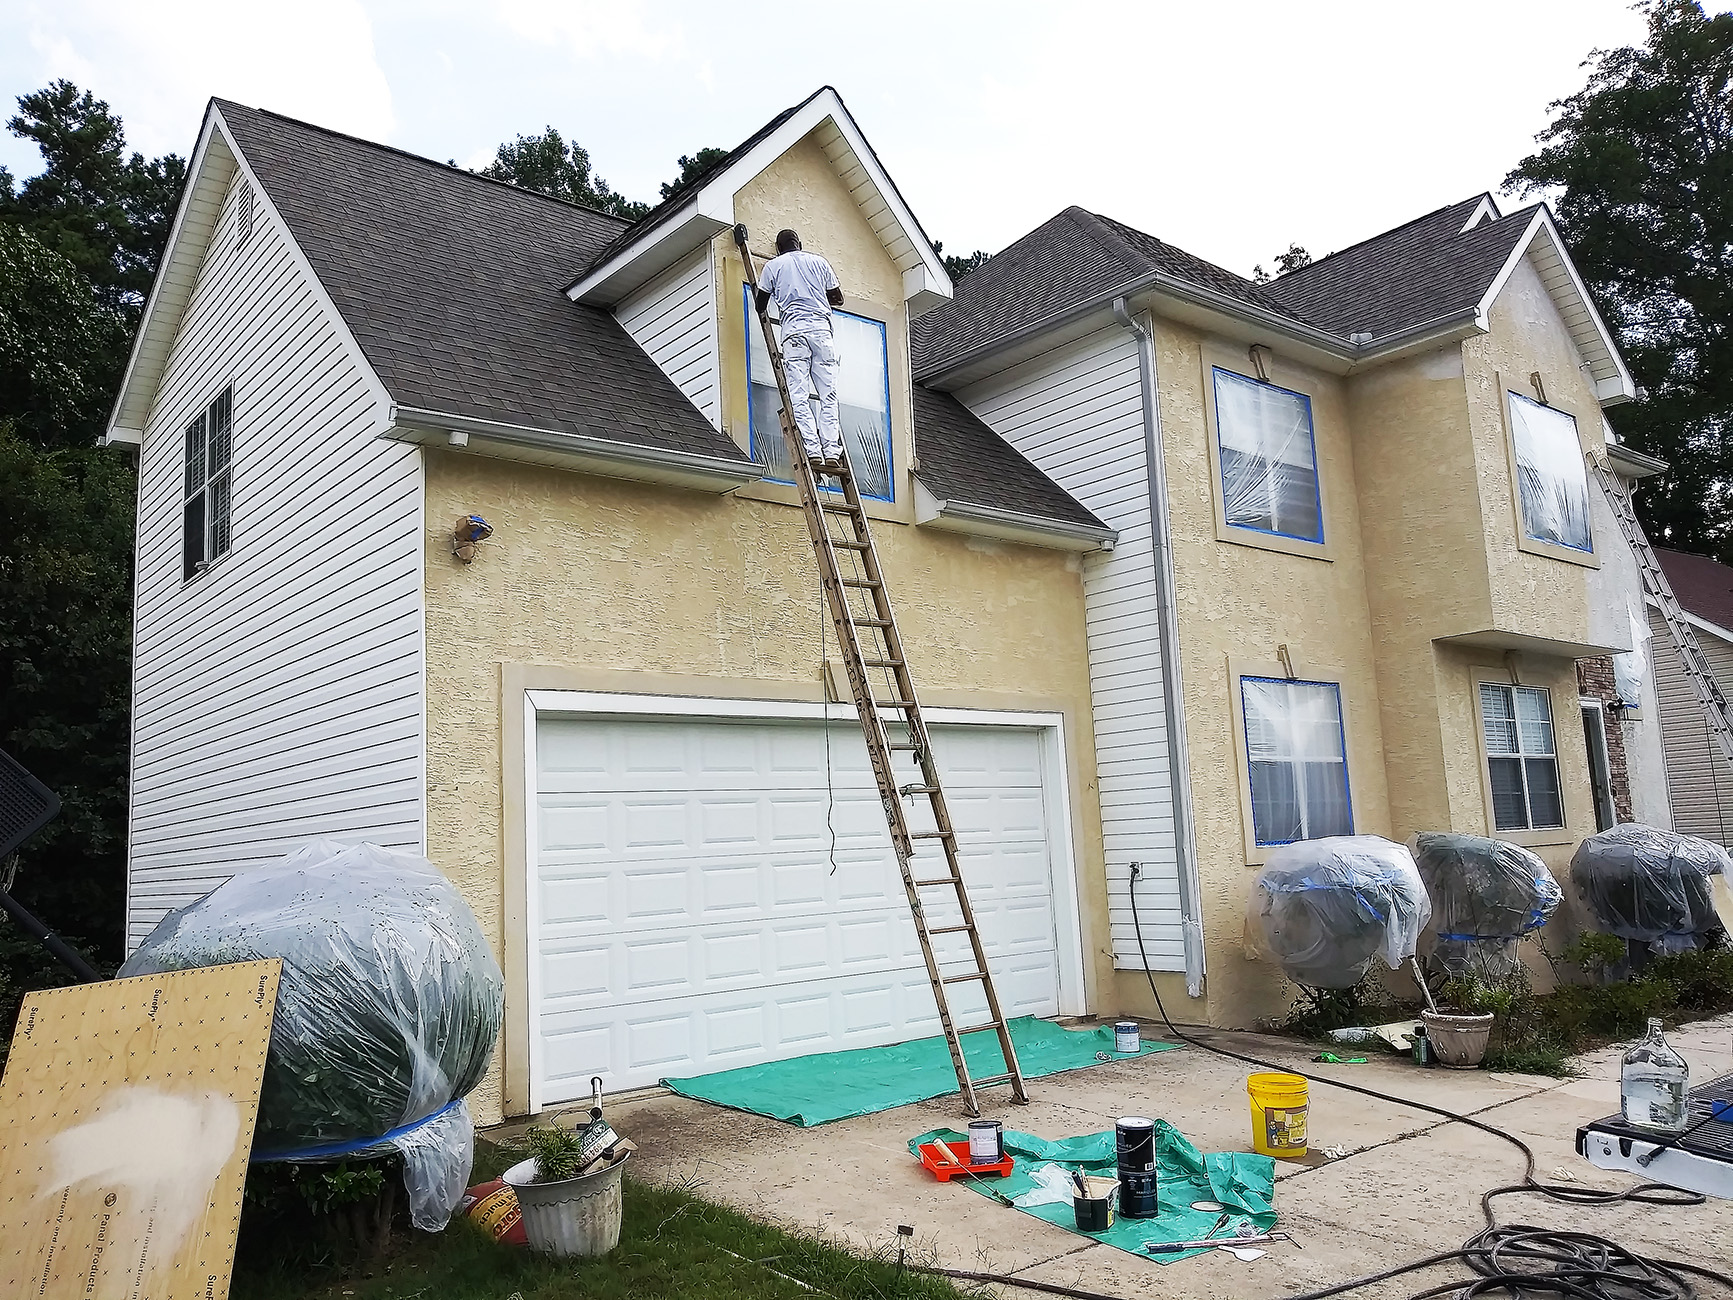 Exterior Re-paint - During